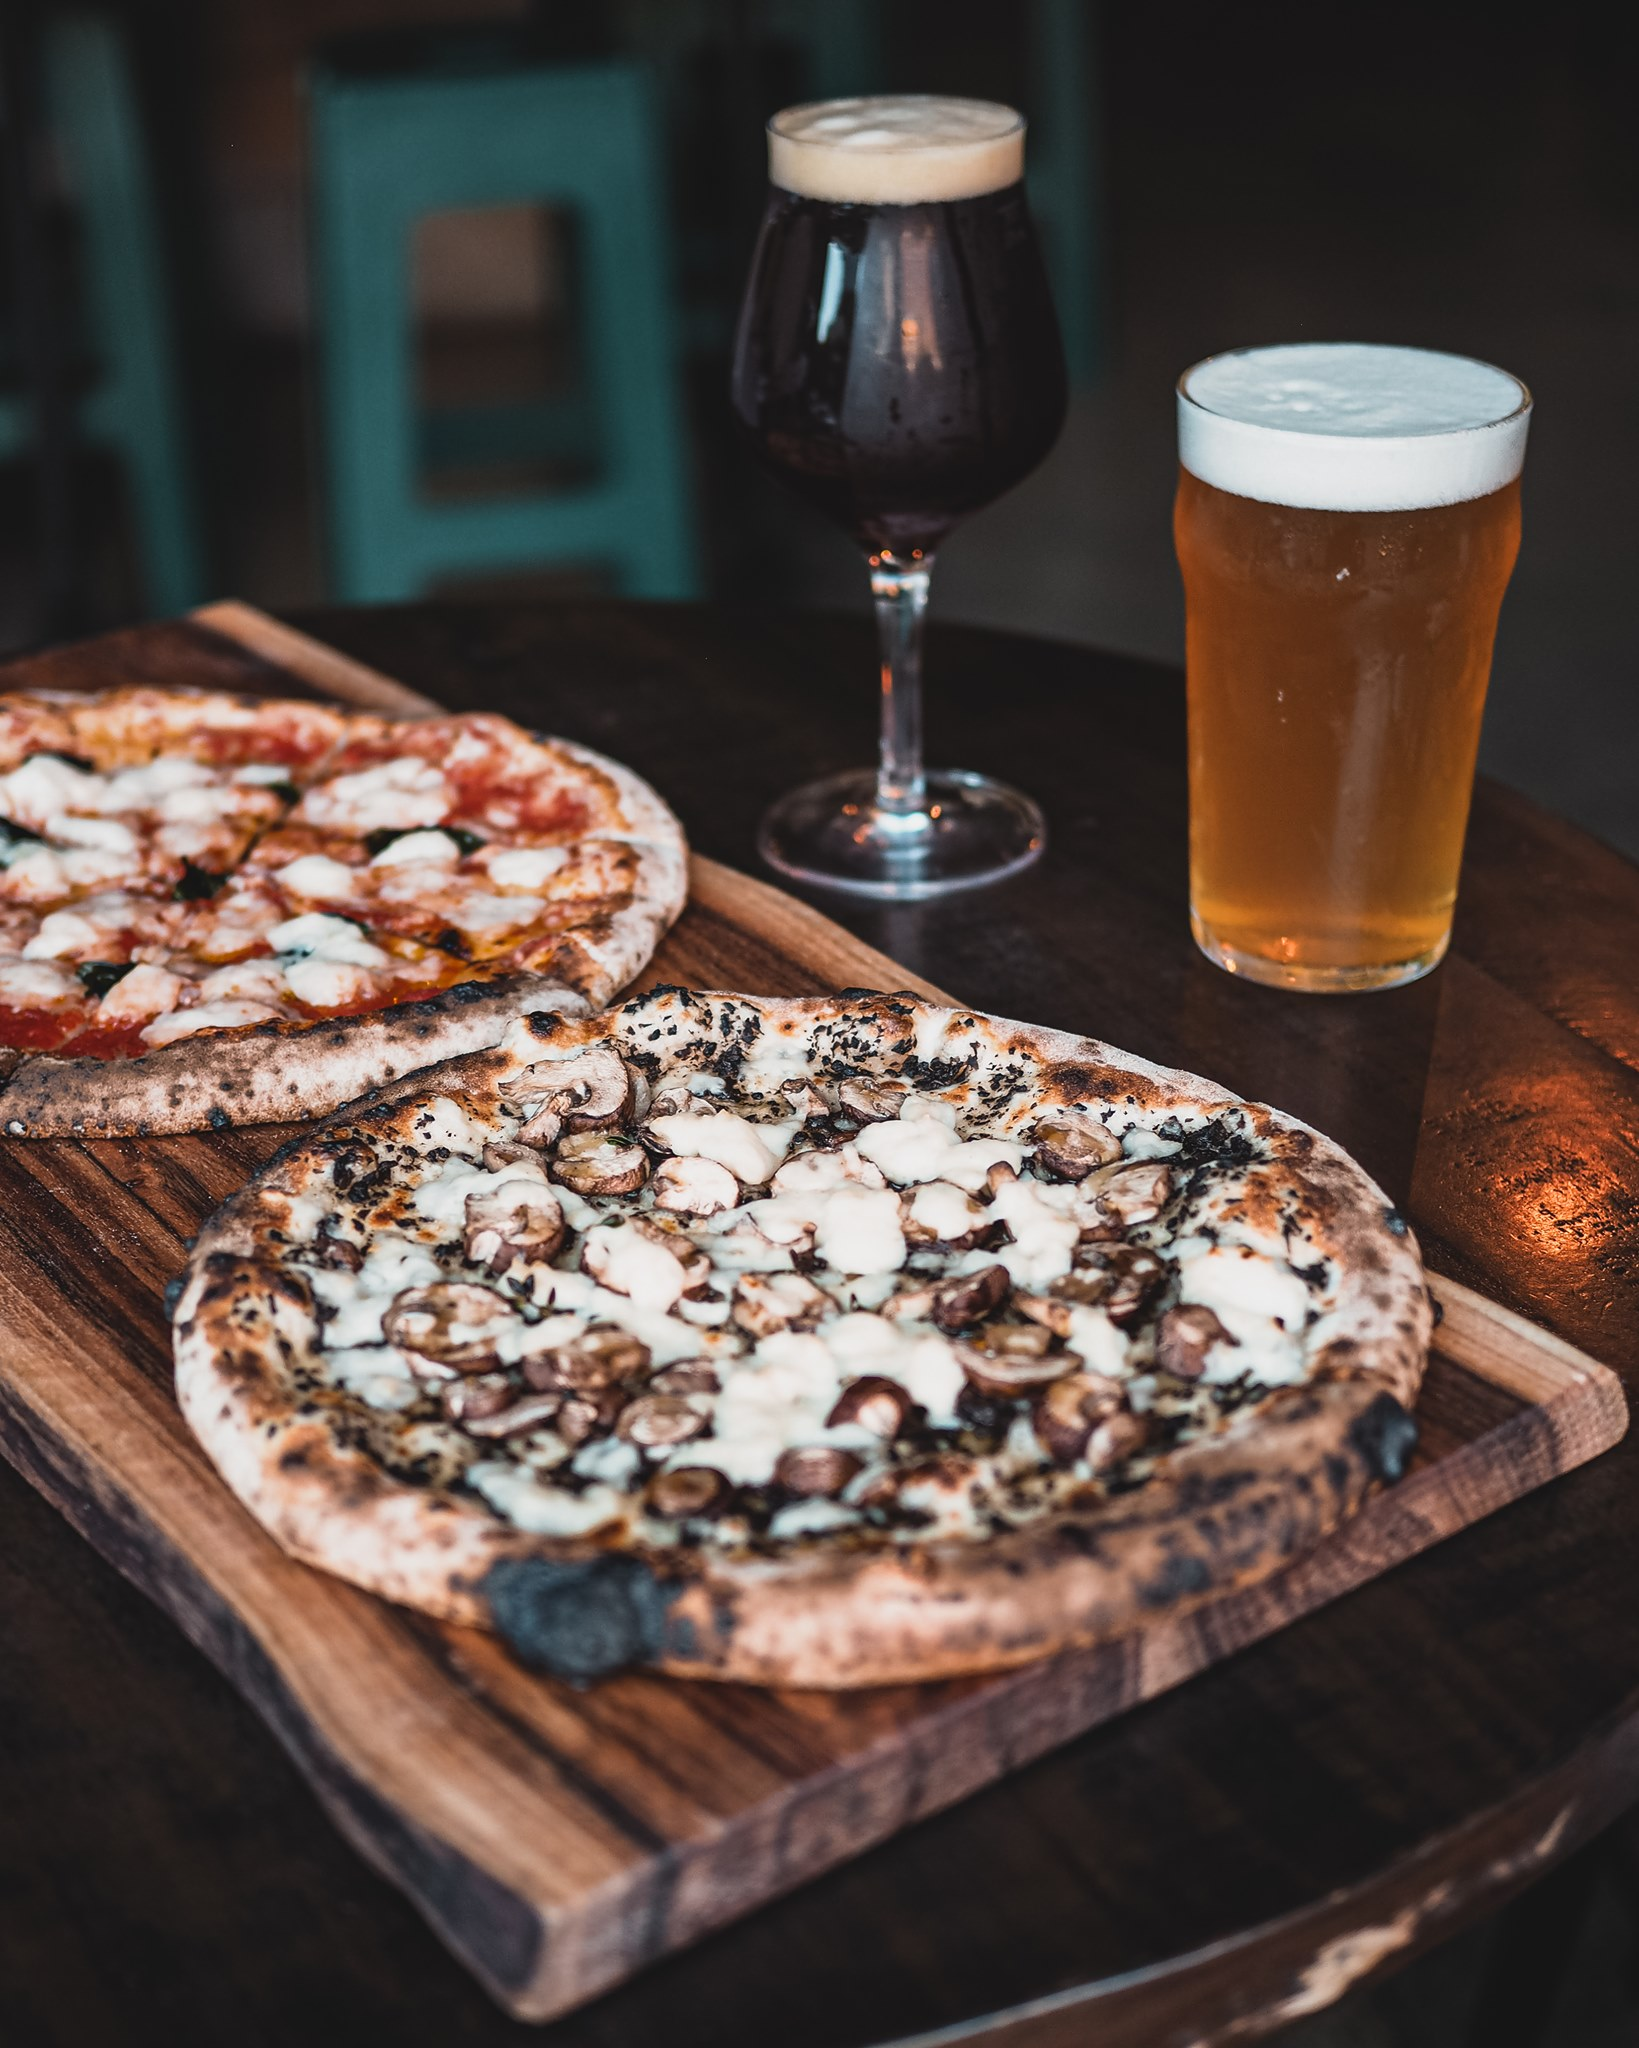 two vegan pizzas on a table with two beers